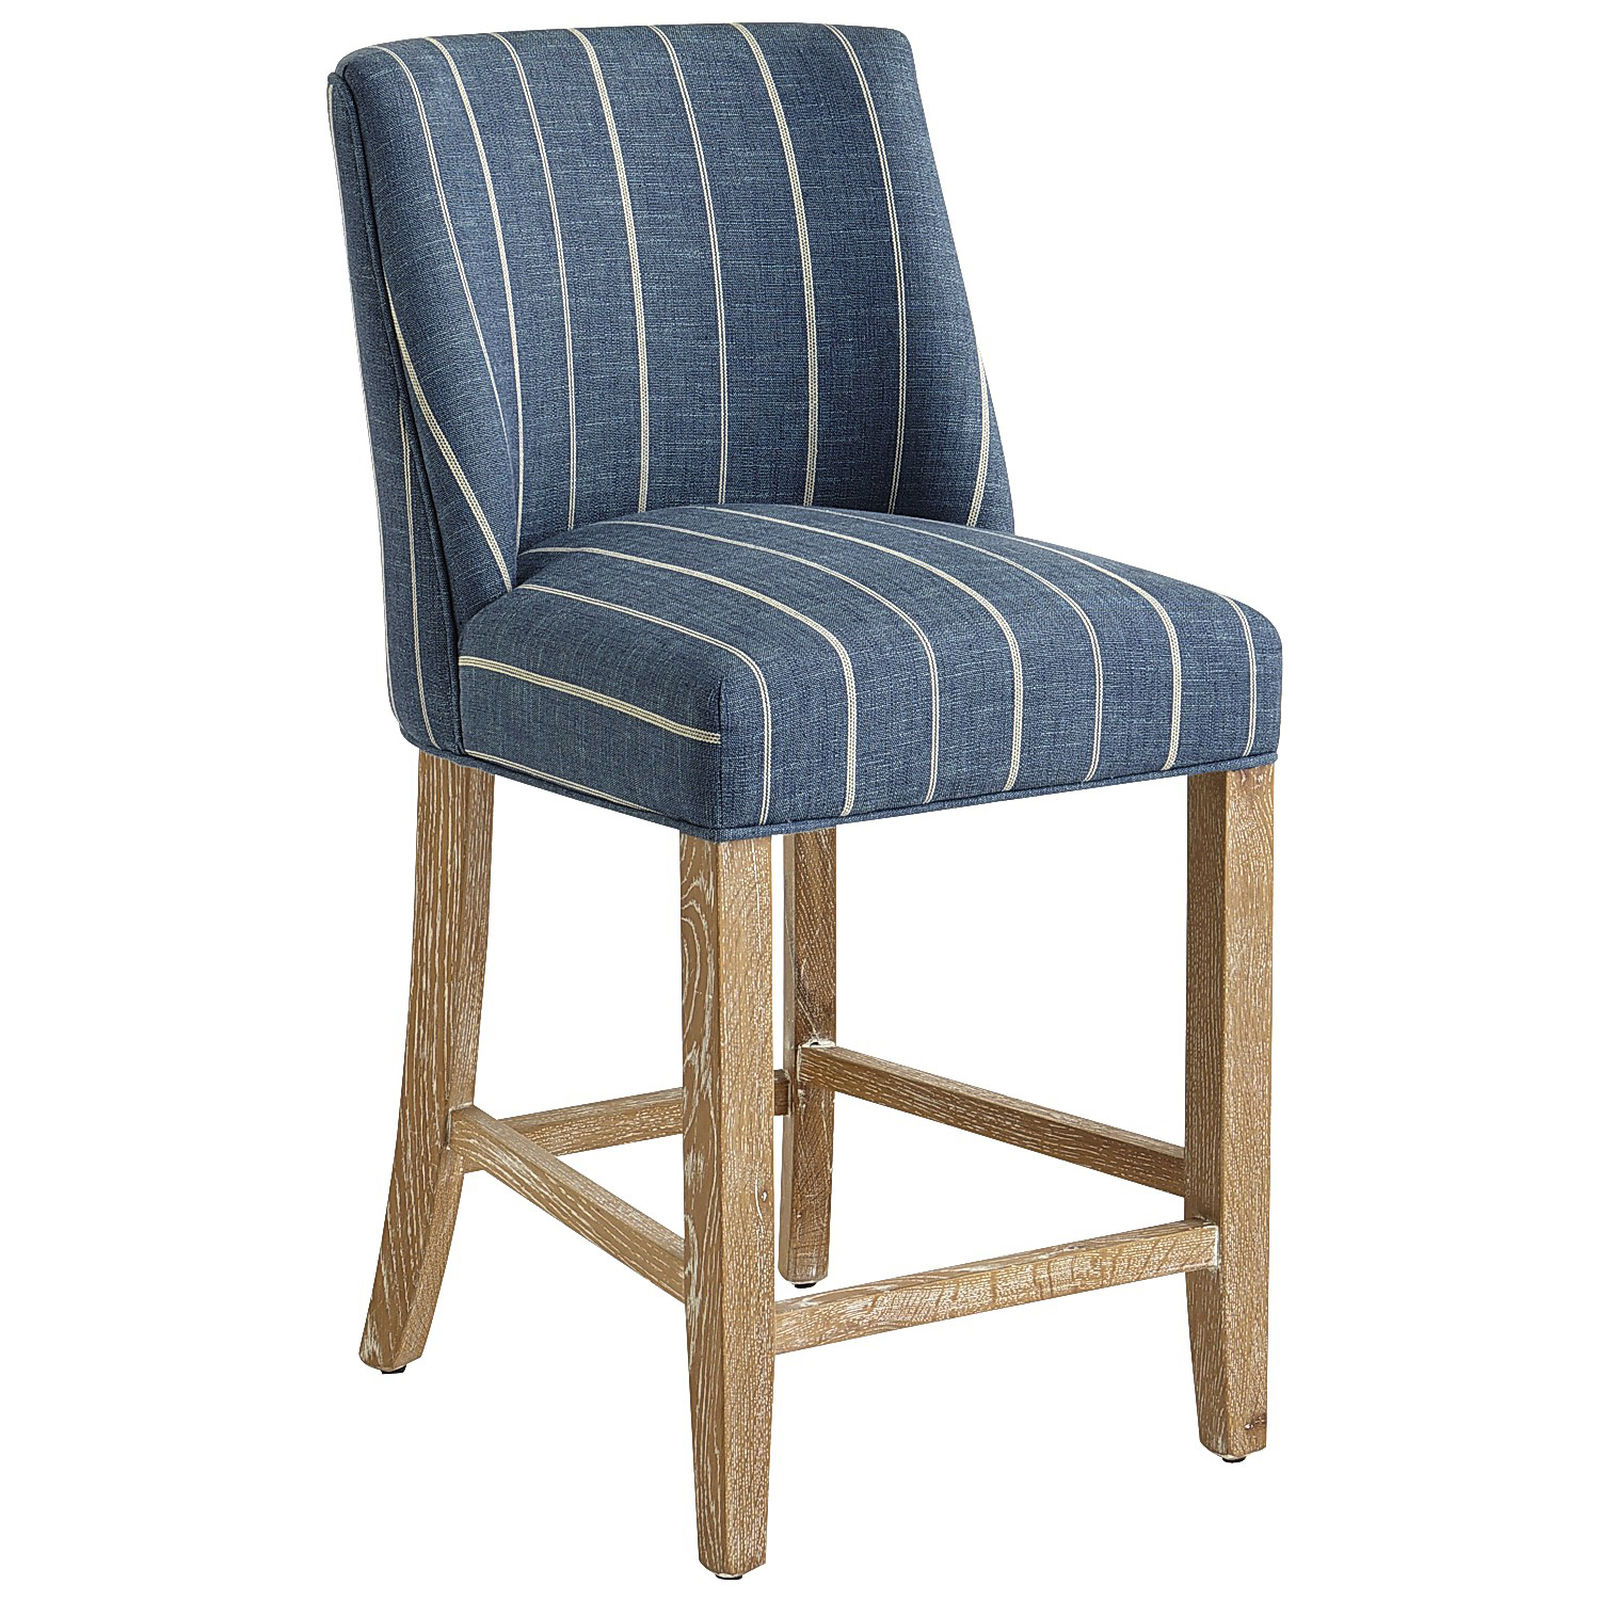 Corinne Indigo Counter Stool -  $249.95